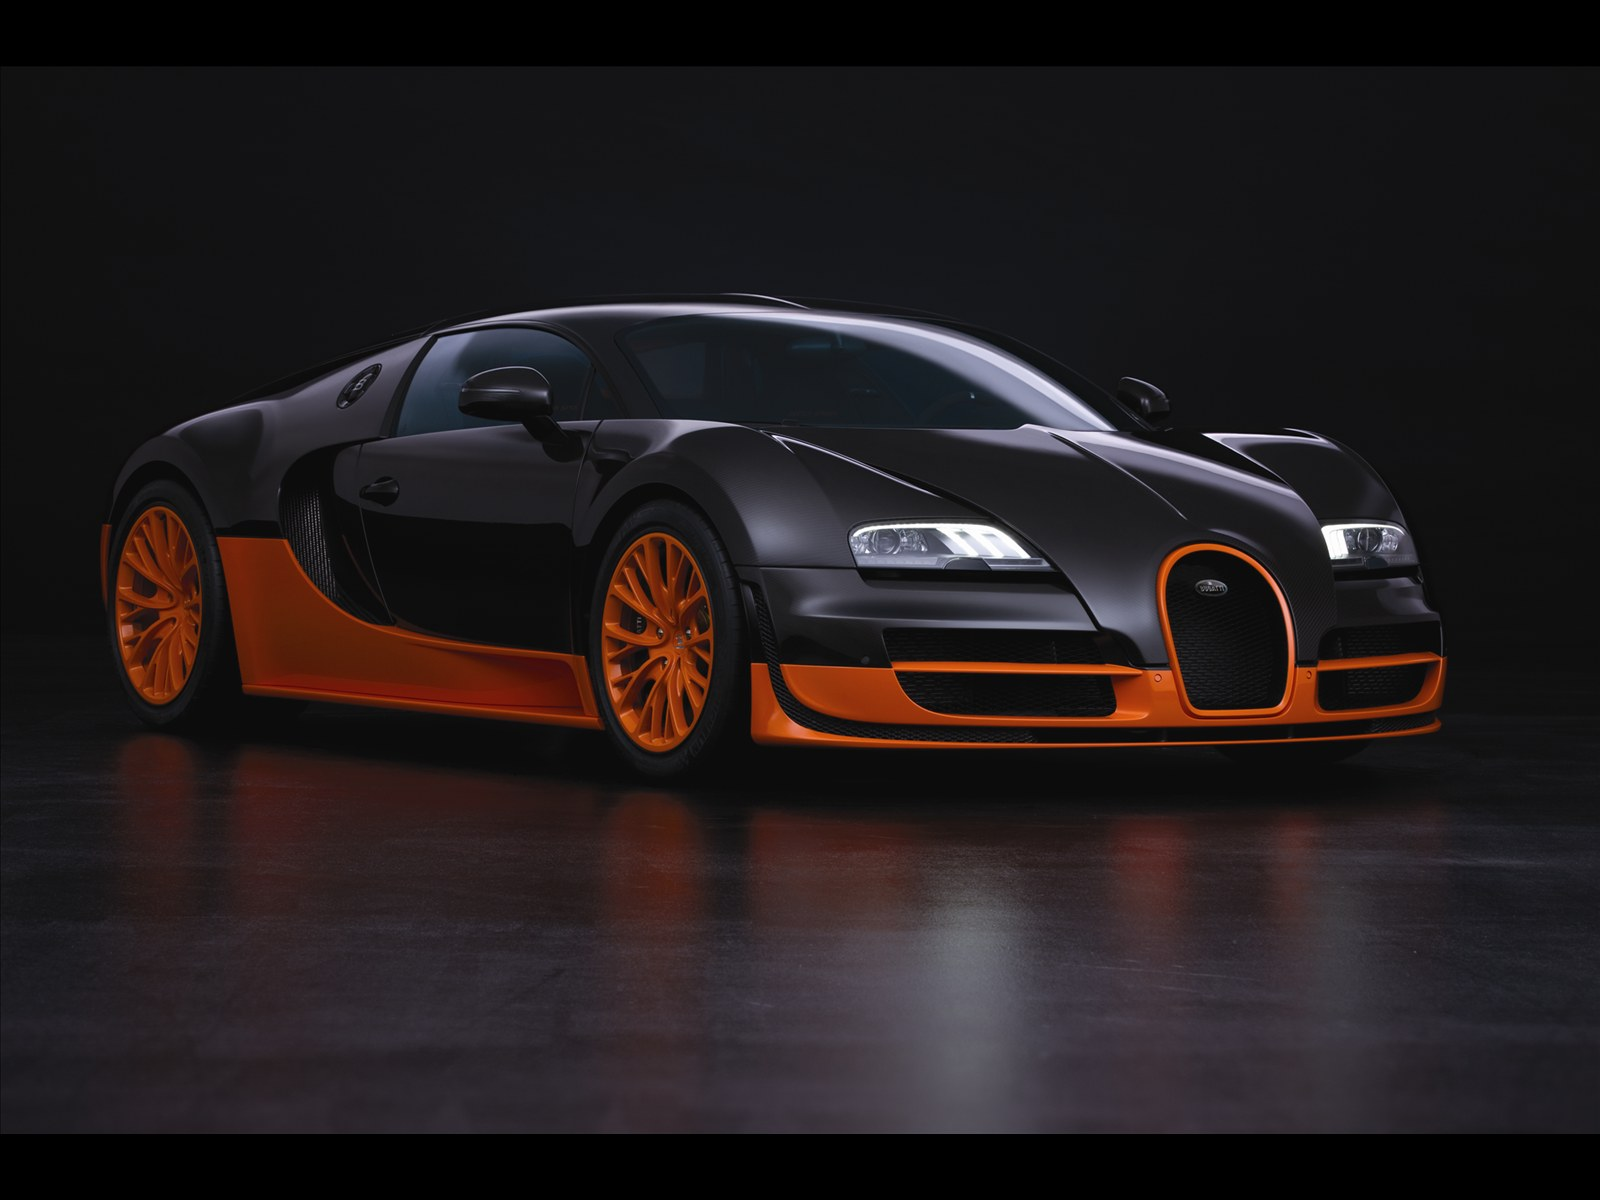 Fastest Car In The World Mobile Wallpapers